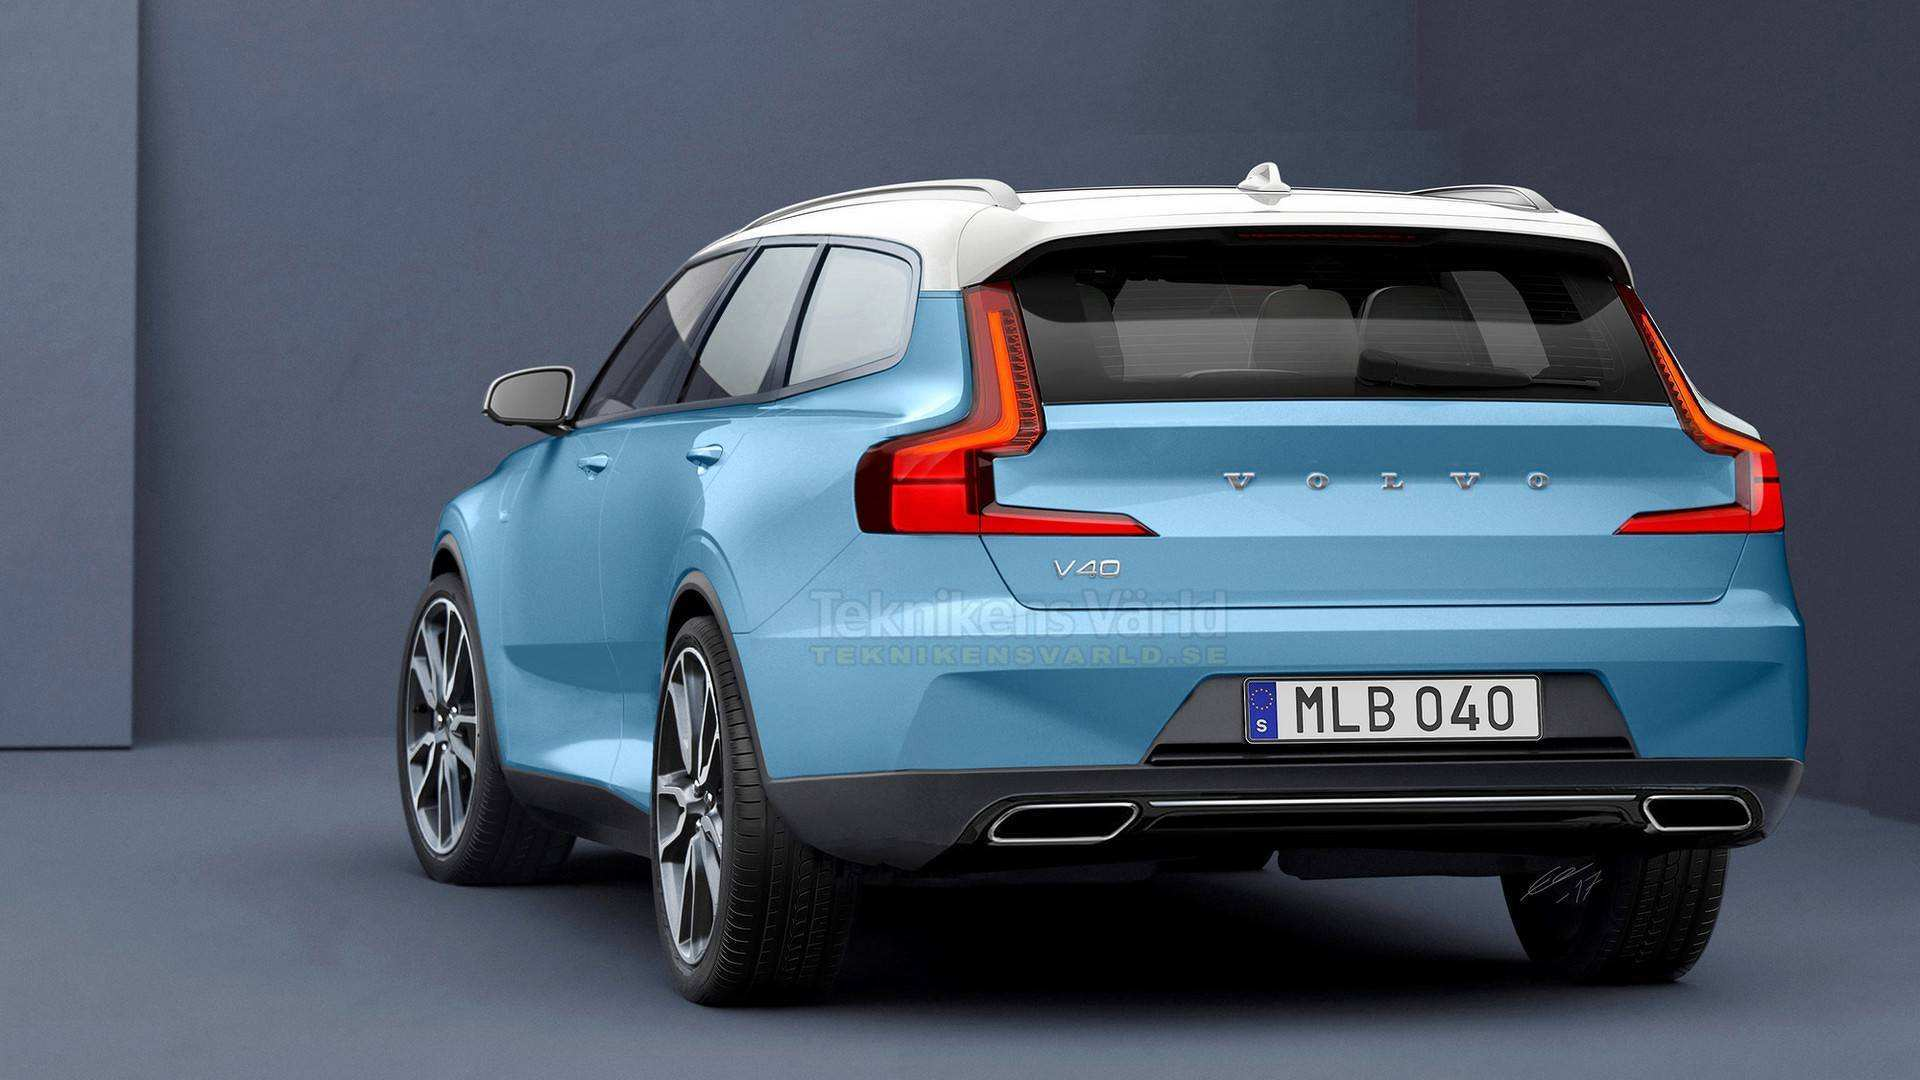 22 New 2020 Volvo V40 Us Release Date